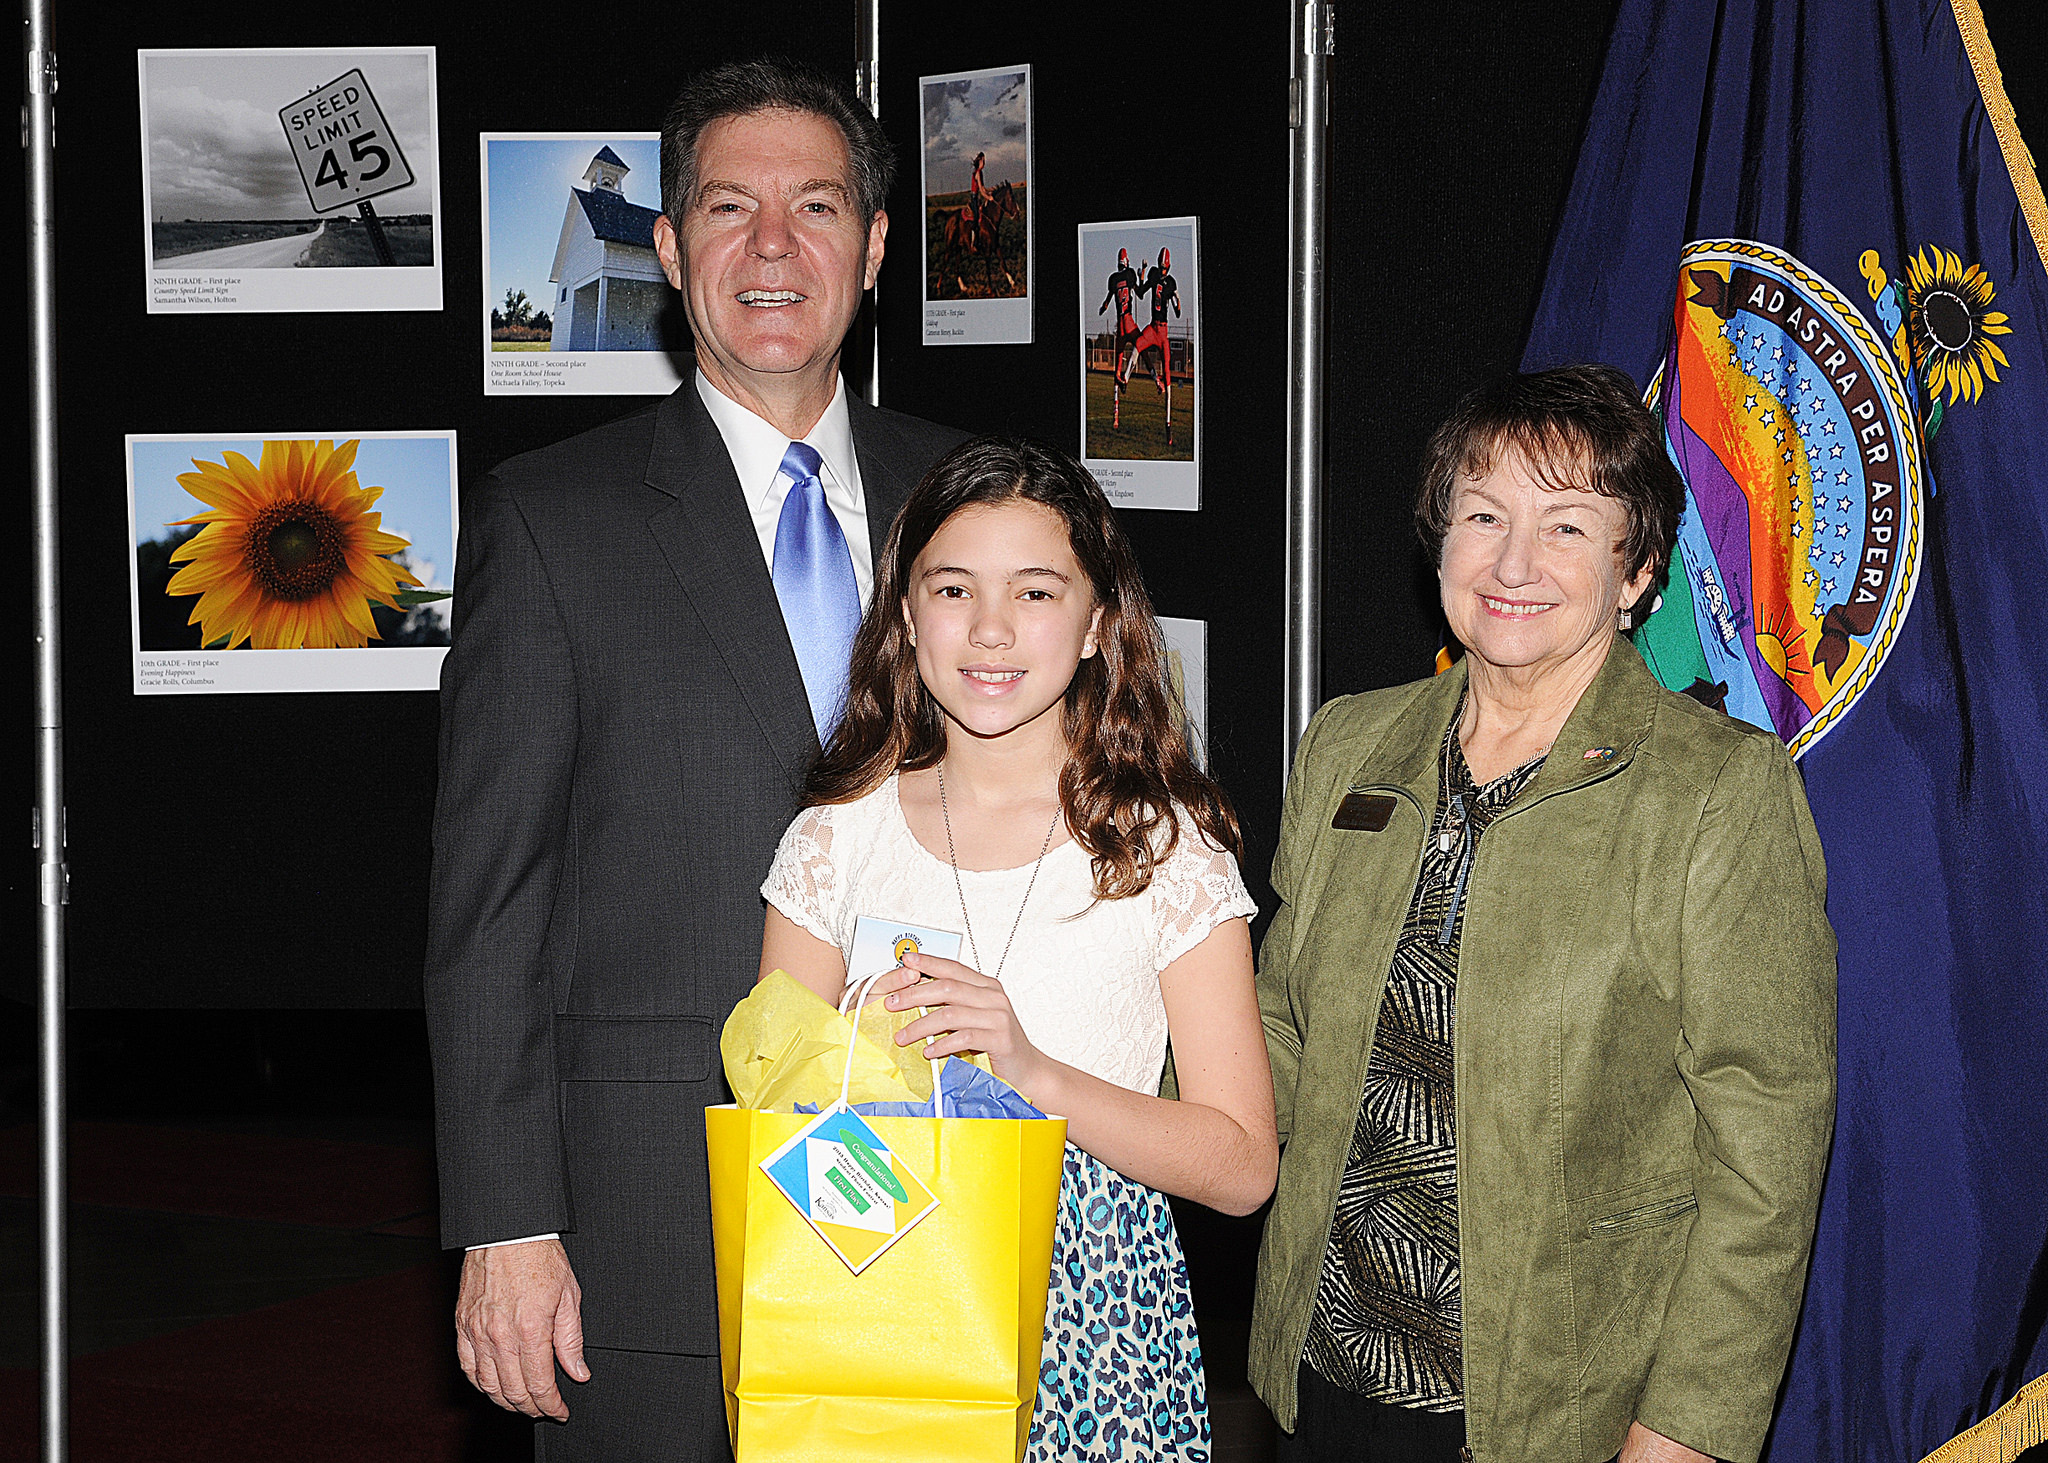 Sixth grade winner Jada Nabus, Maurice Hilbert not pictured, with Govoernor Sam Brownback and Marearl Denning